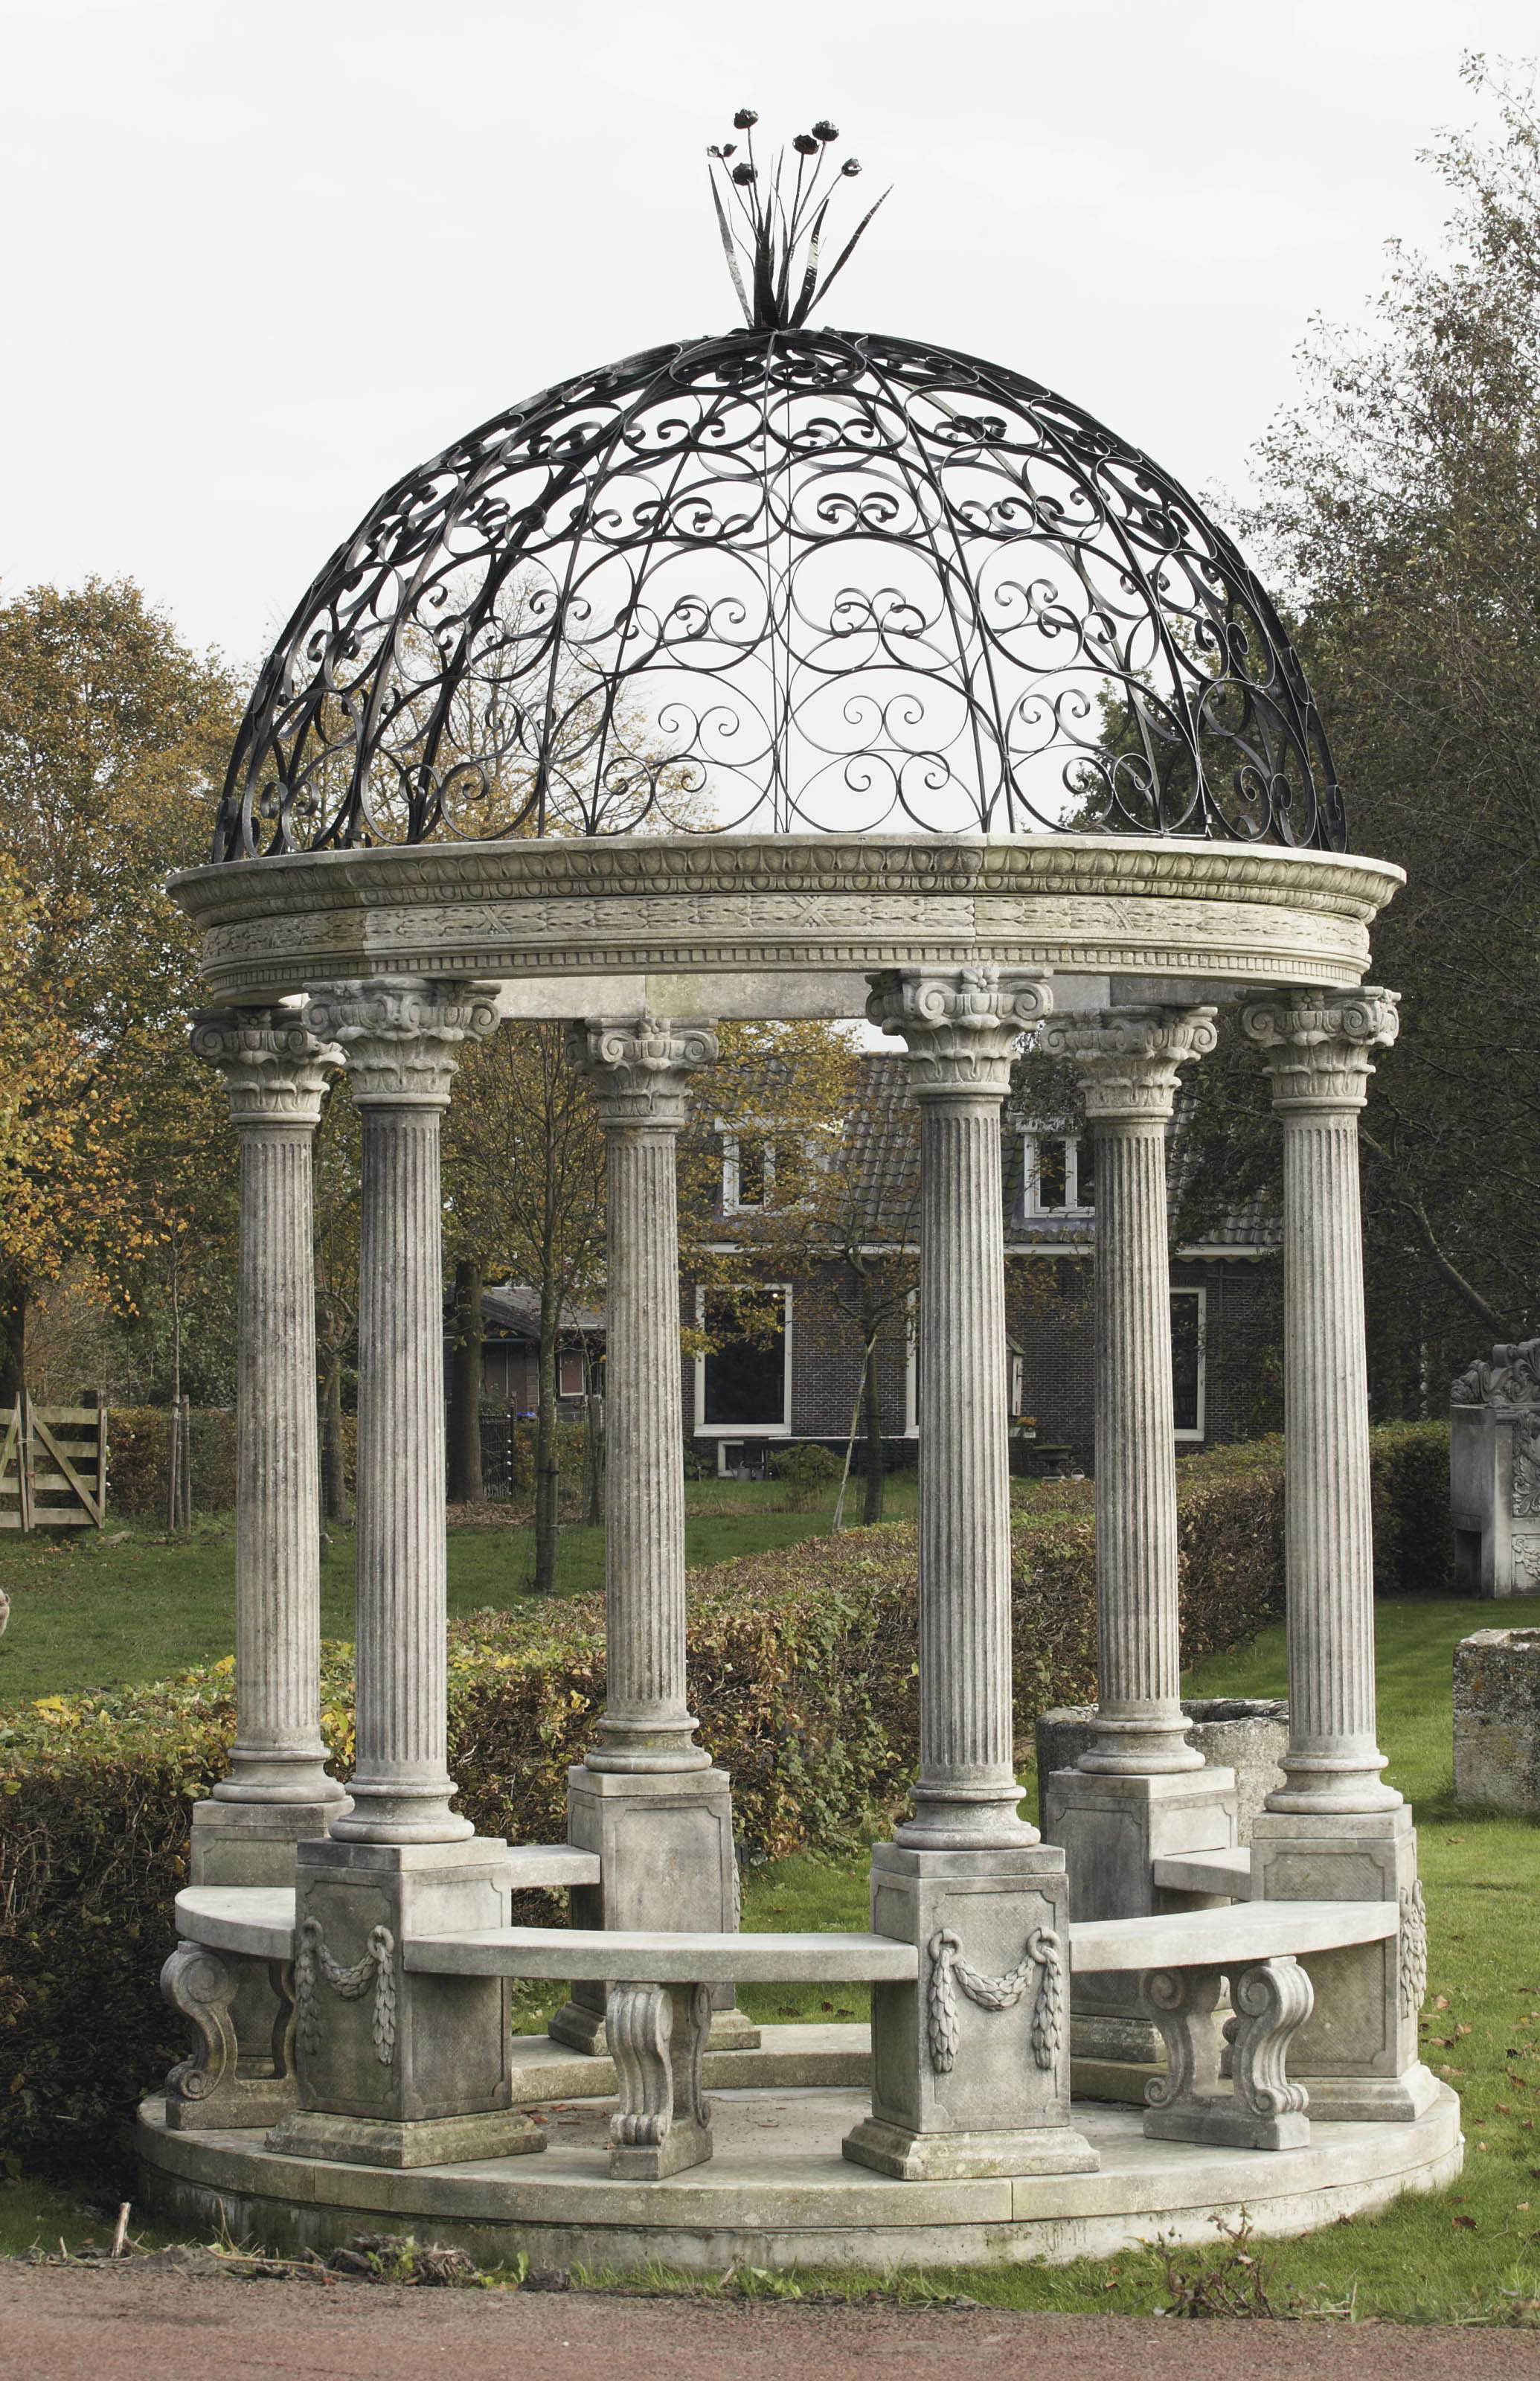 A carved limestone and wrought-iron Rotunda